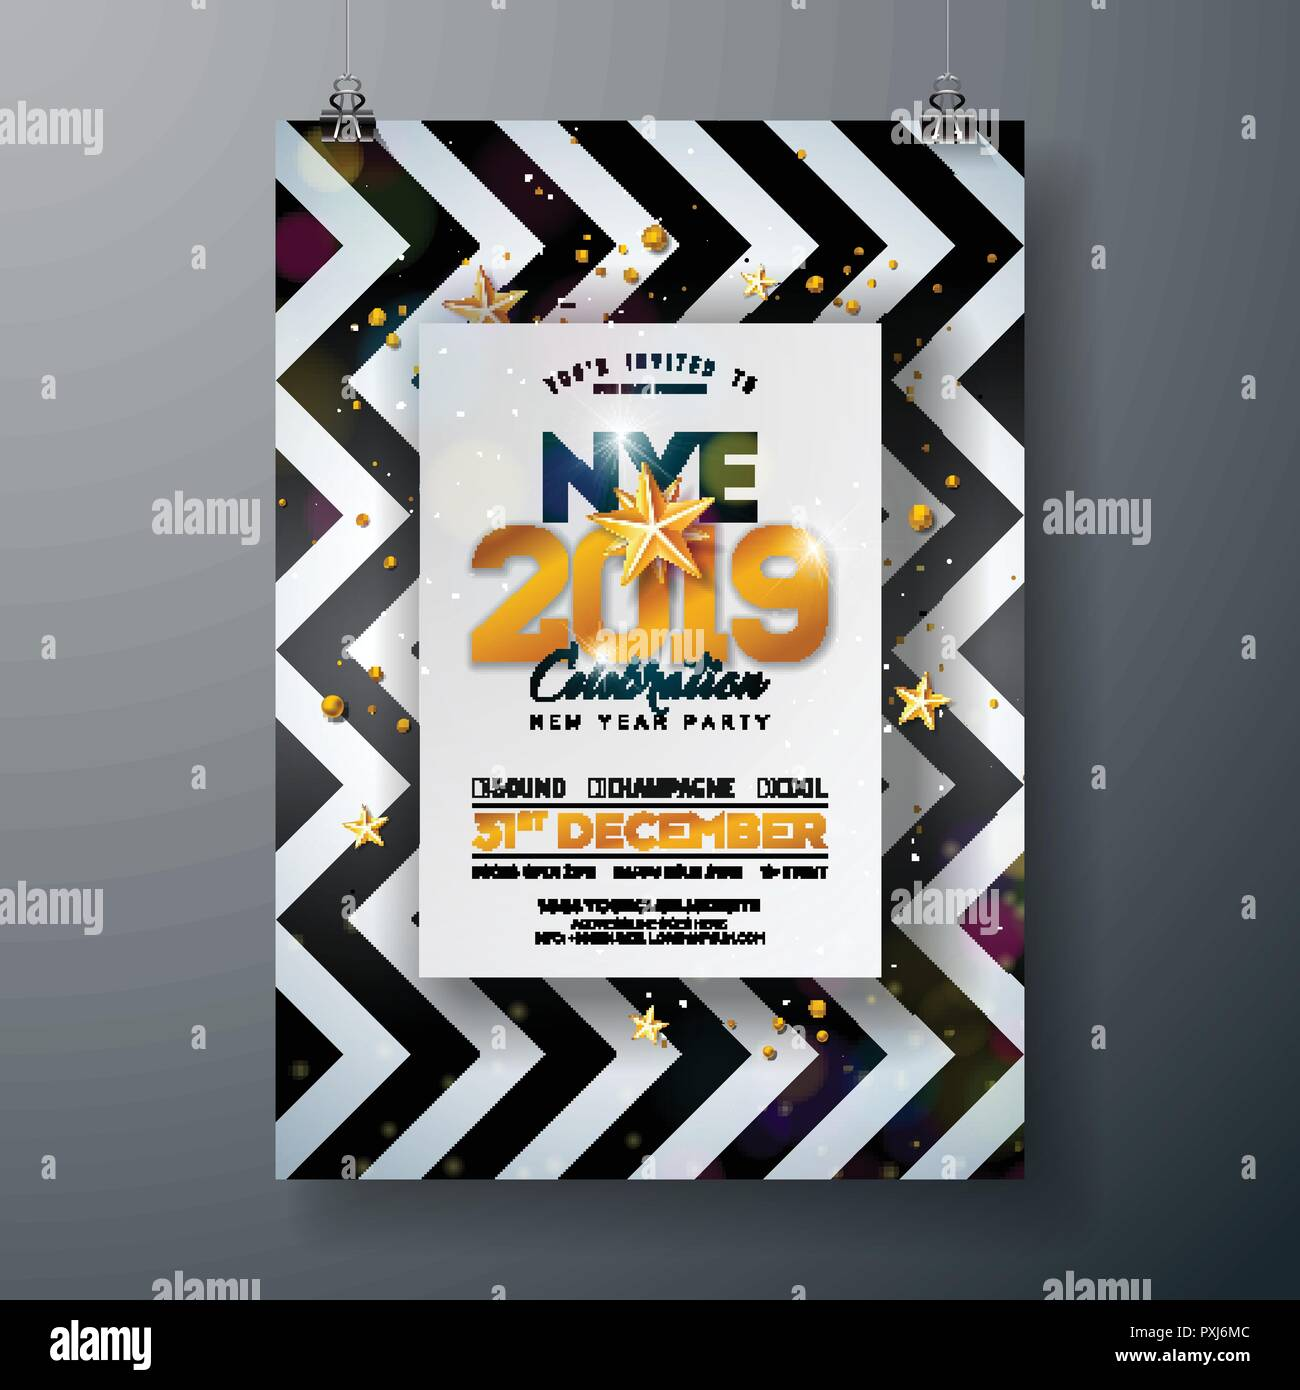 2018 new year party celebration poster template illustration with shiny gold number on abstract black and white background